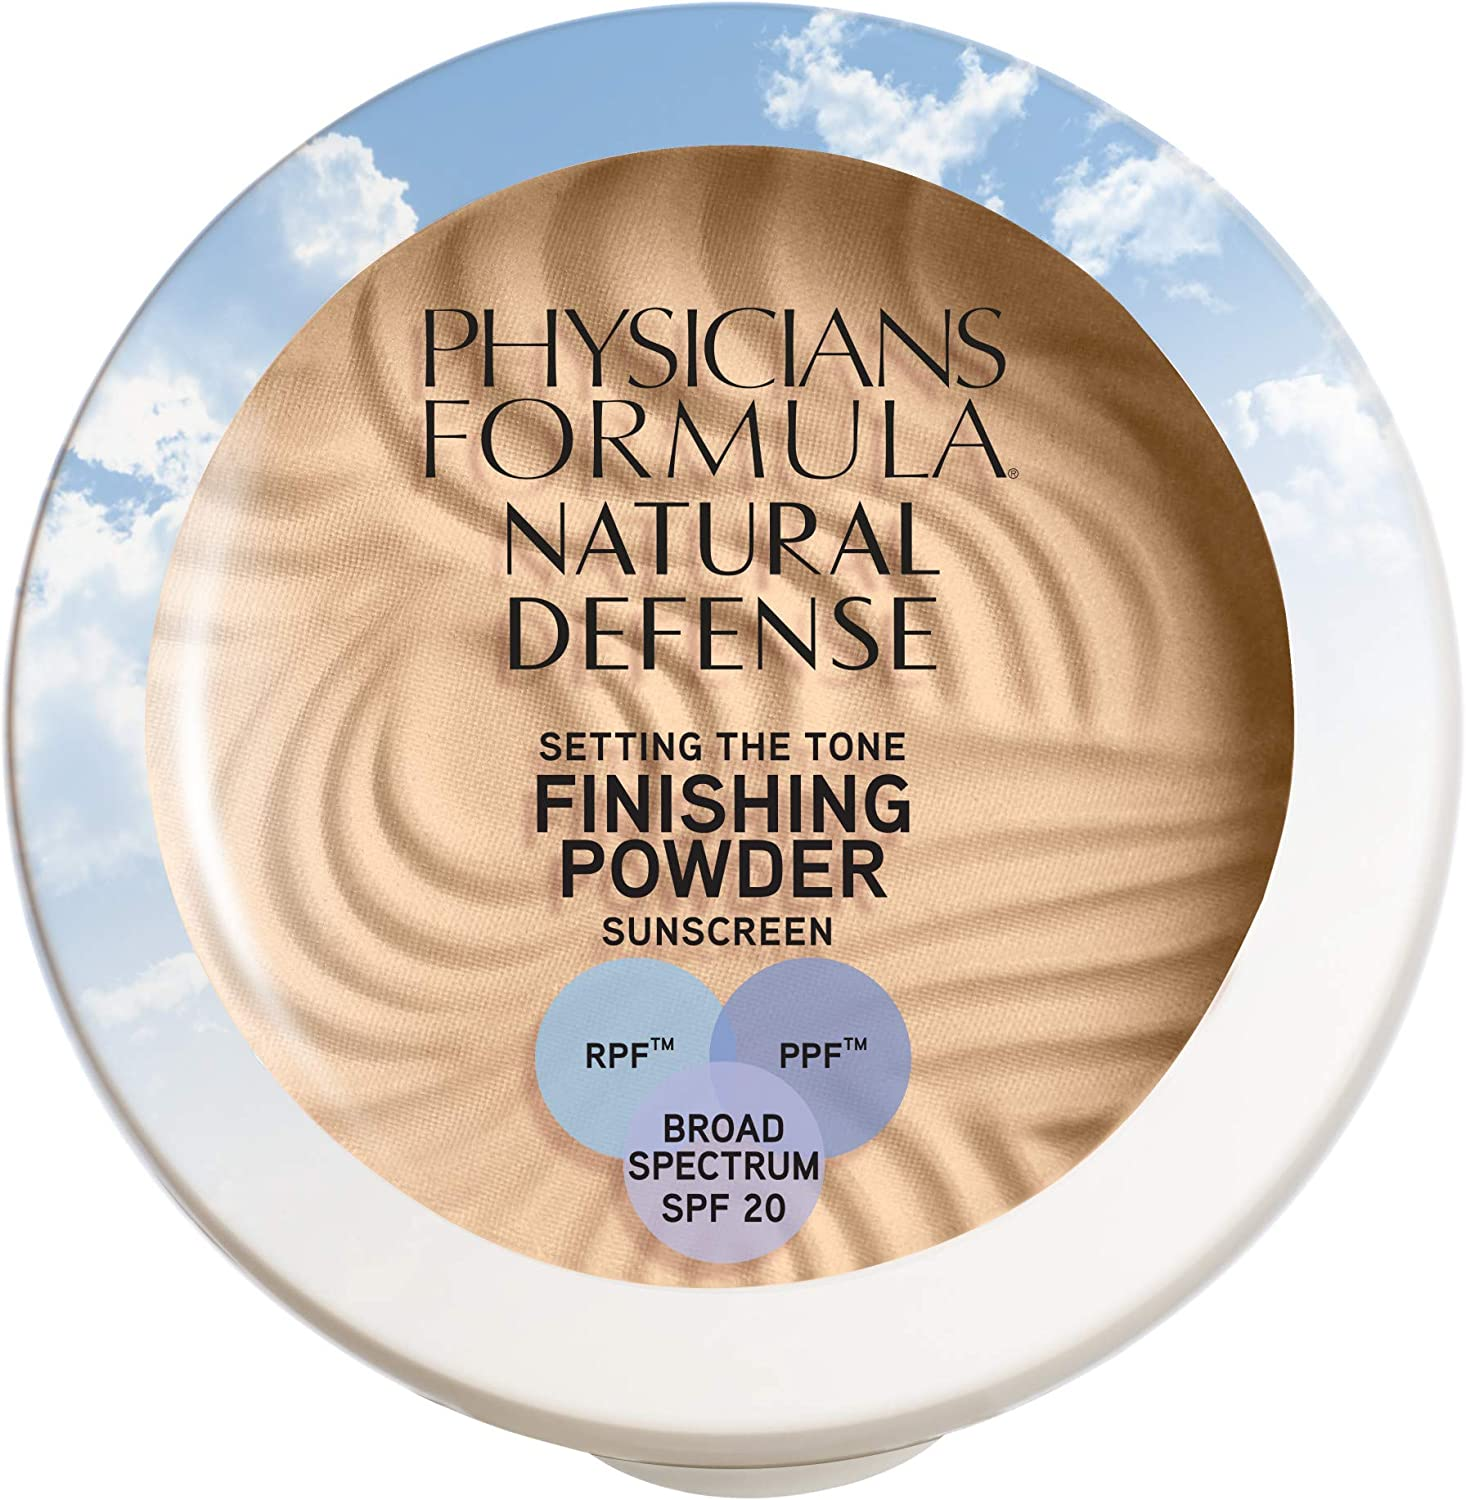 Physicians Formula Natural Defense Setting the Tone Finishing Powder